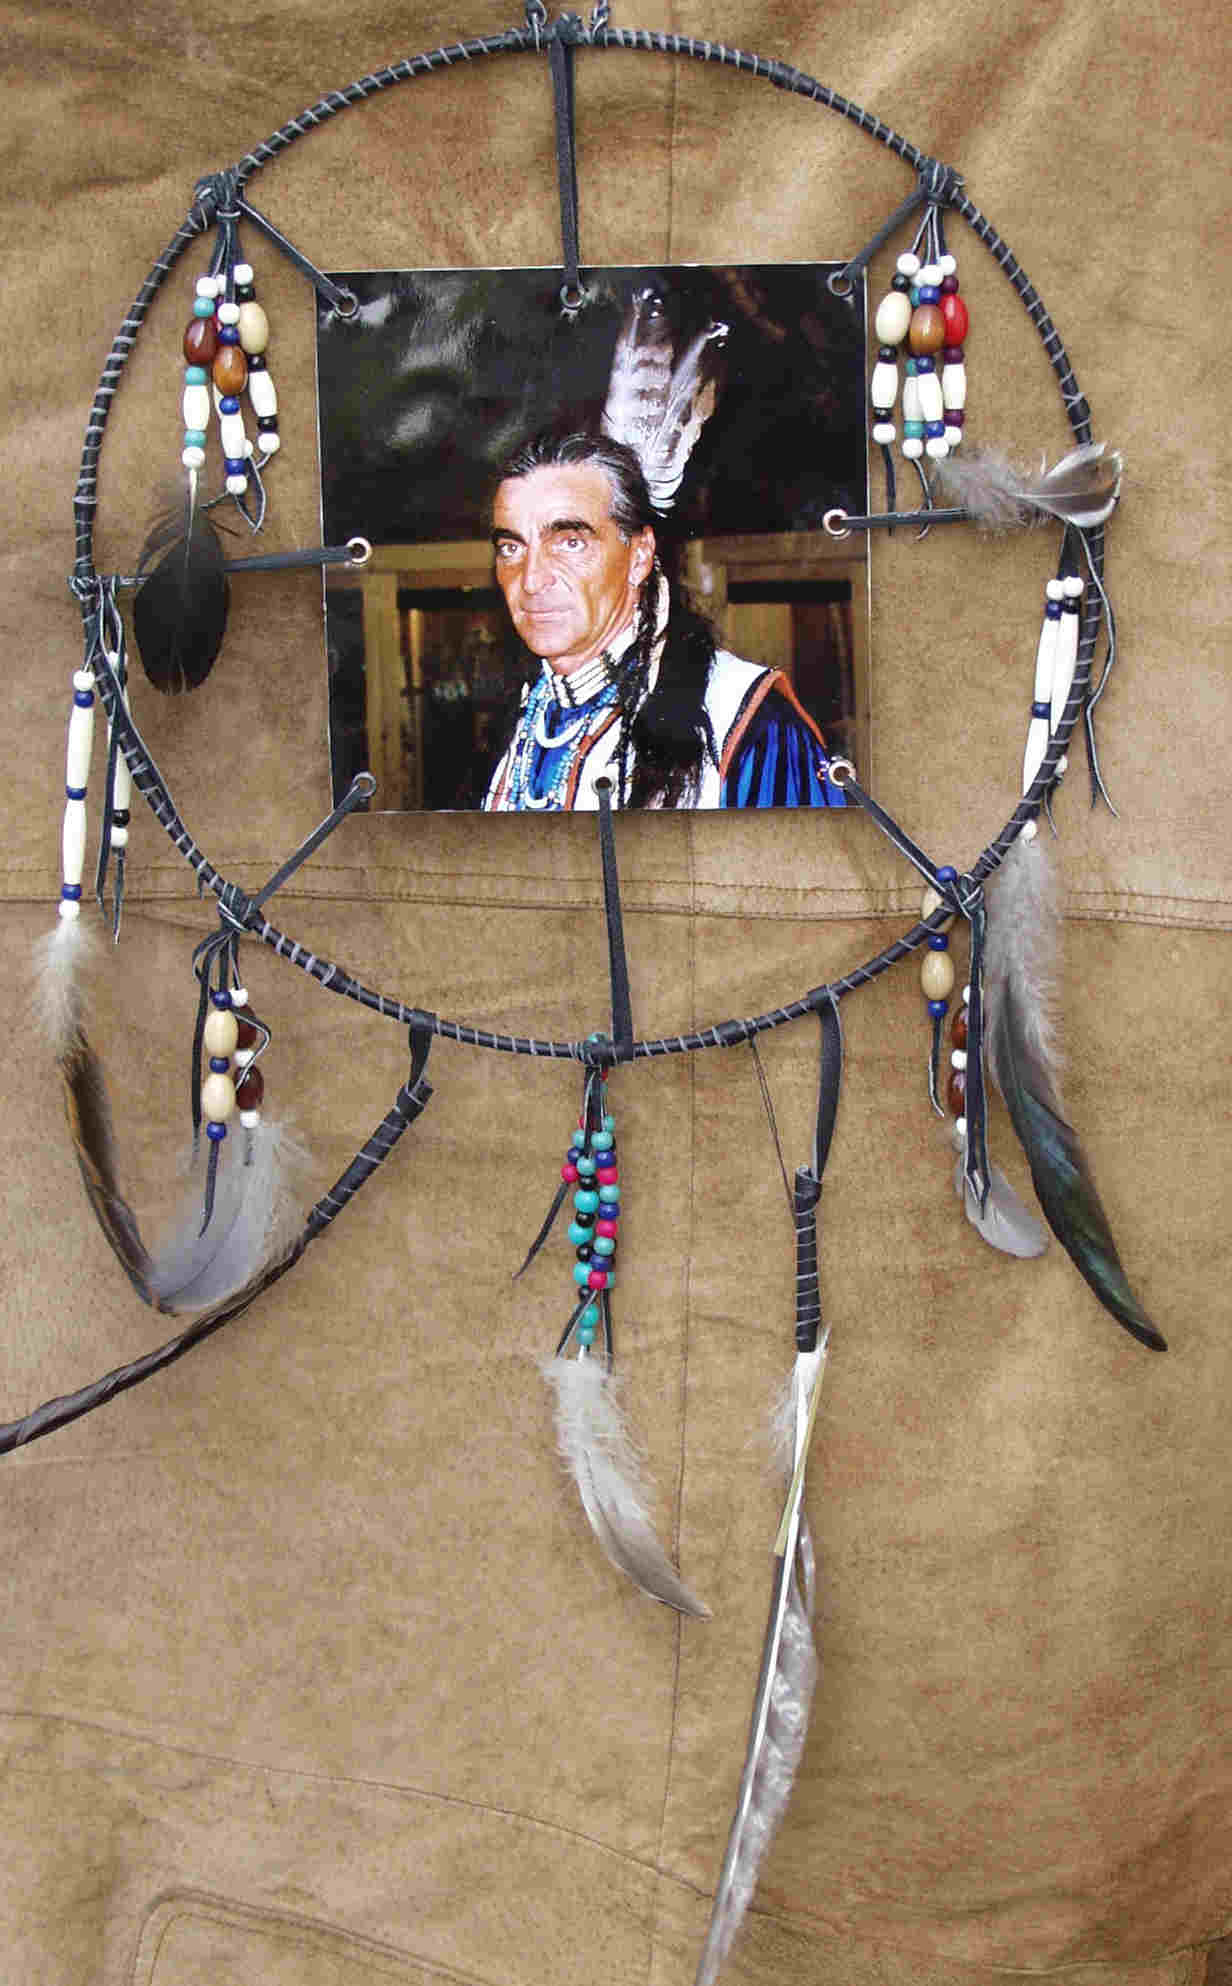 Indian Picture - Enoho Wedom. Jagender Wolf (Northern Cheyenne Indianer). Mit echten Knochen, Holzperlen, Holzoliven, verschiedenen Vogelfedern. Mit echten Leder gefertigt. Richtpreis €  57,00.-